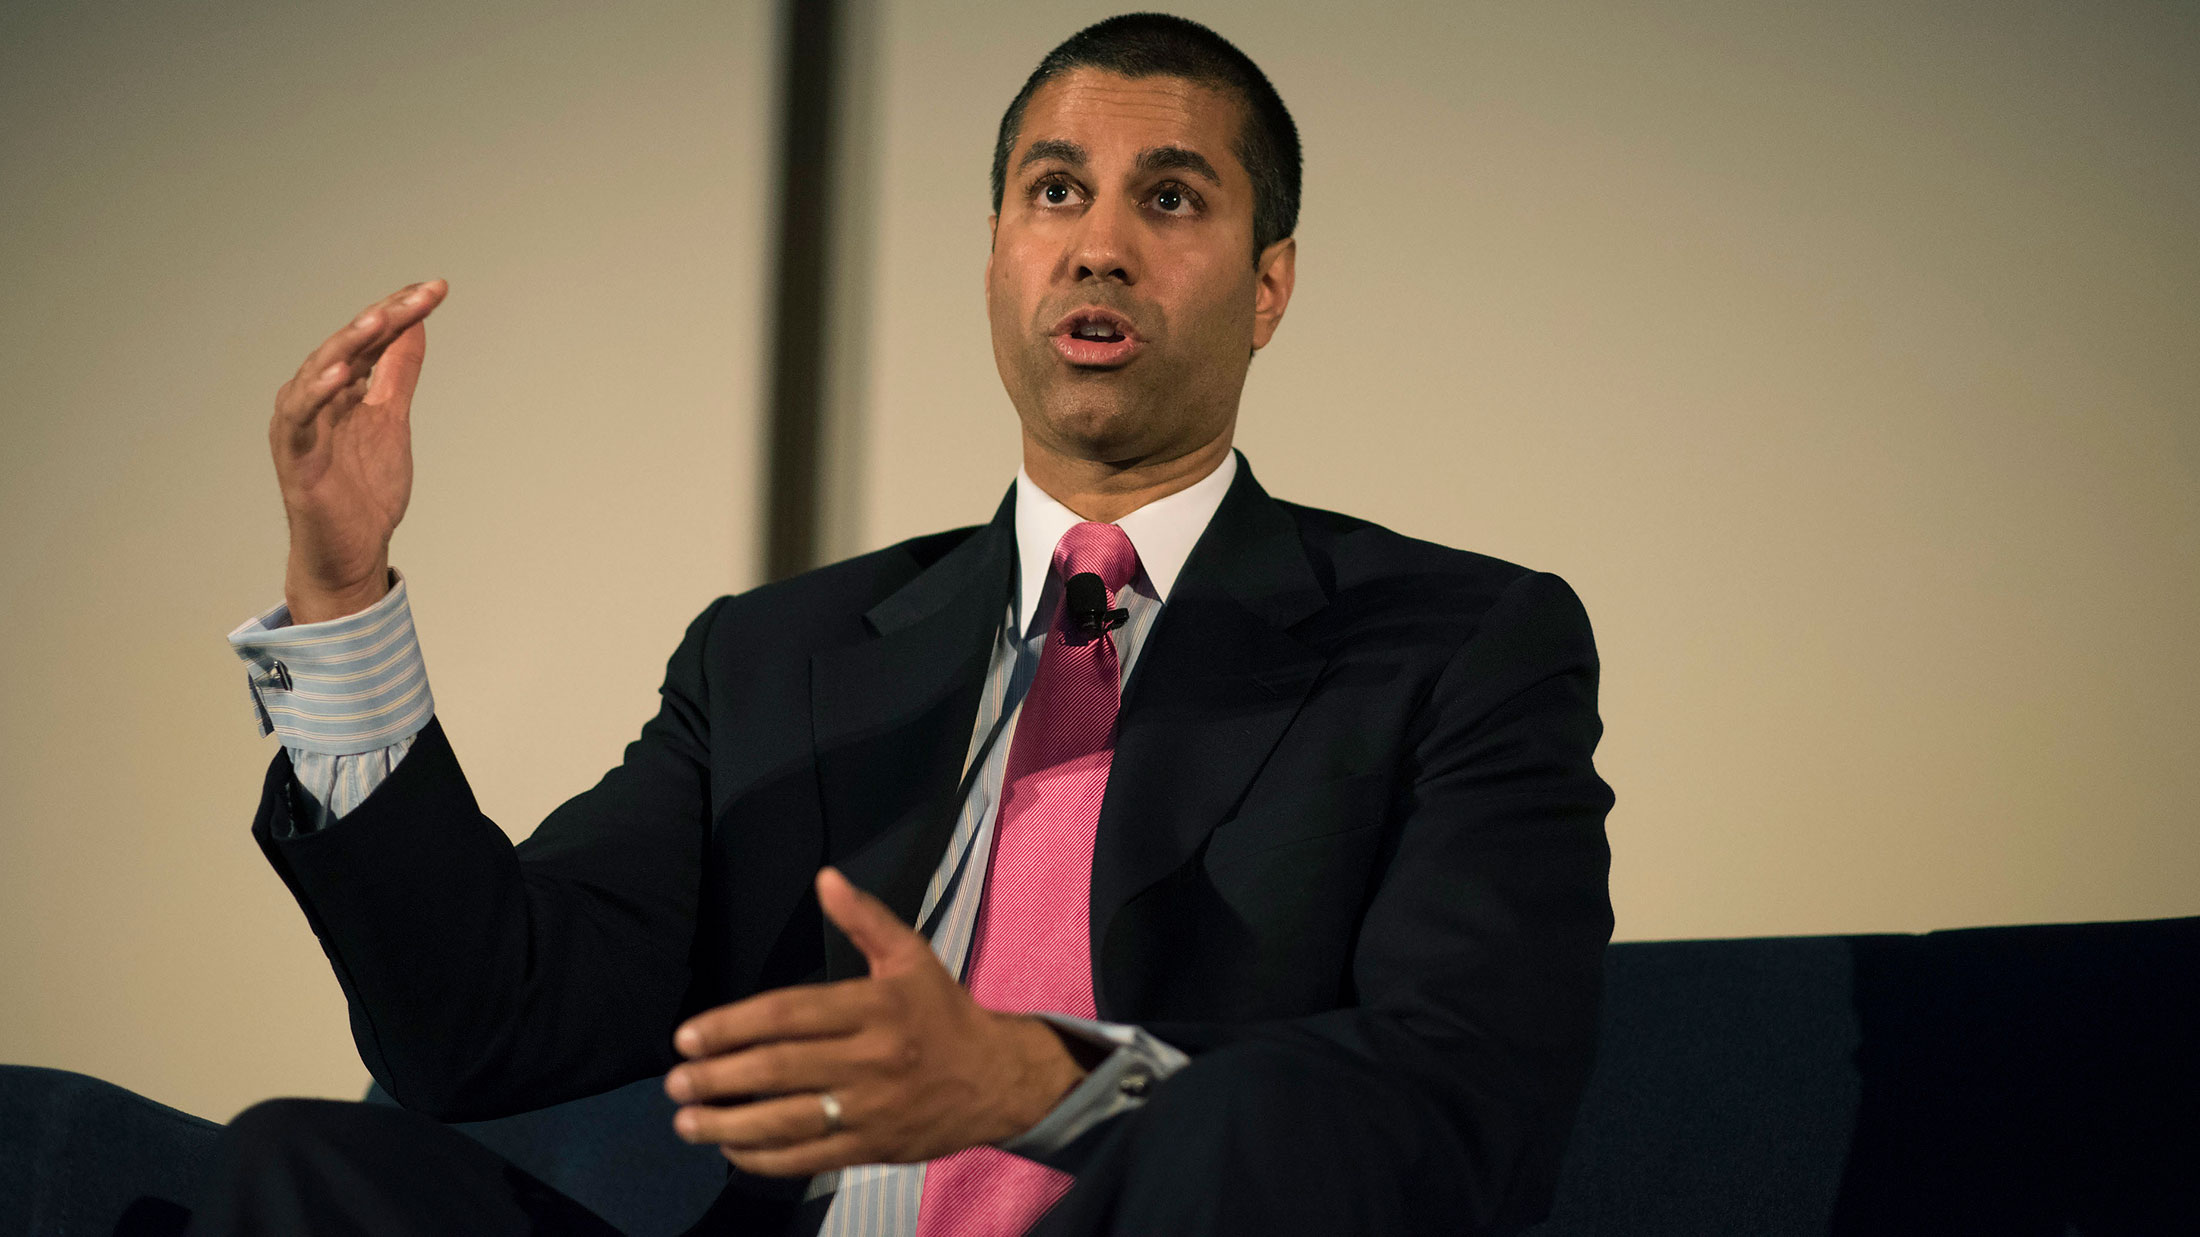 Trump Taps Net-Neutrality Foe Ajit Pai to Lead FCC, Source Says